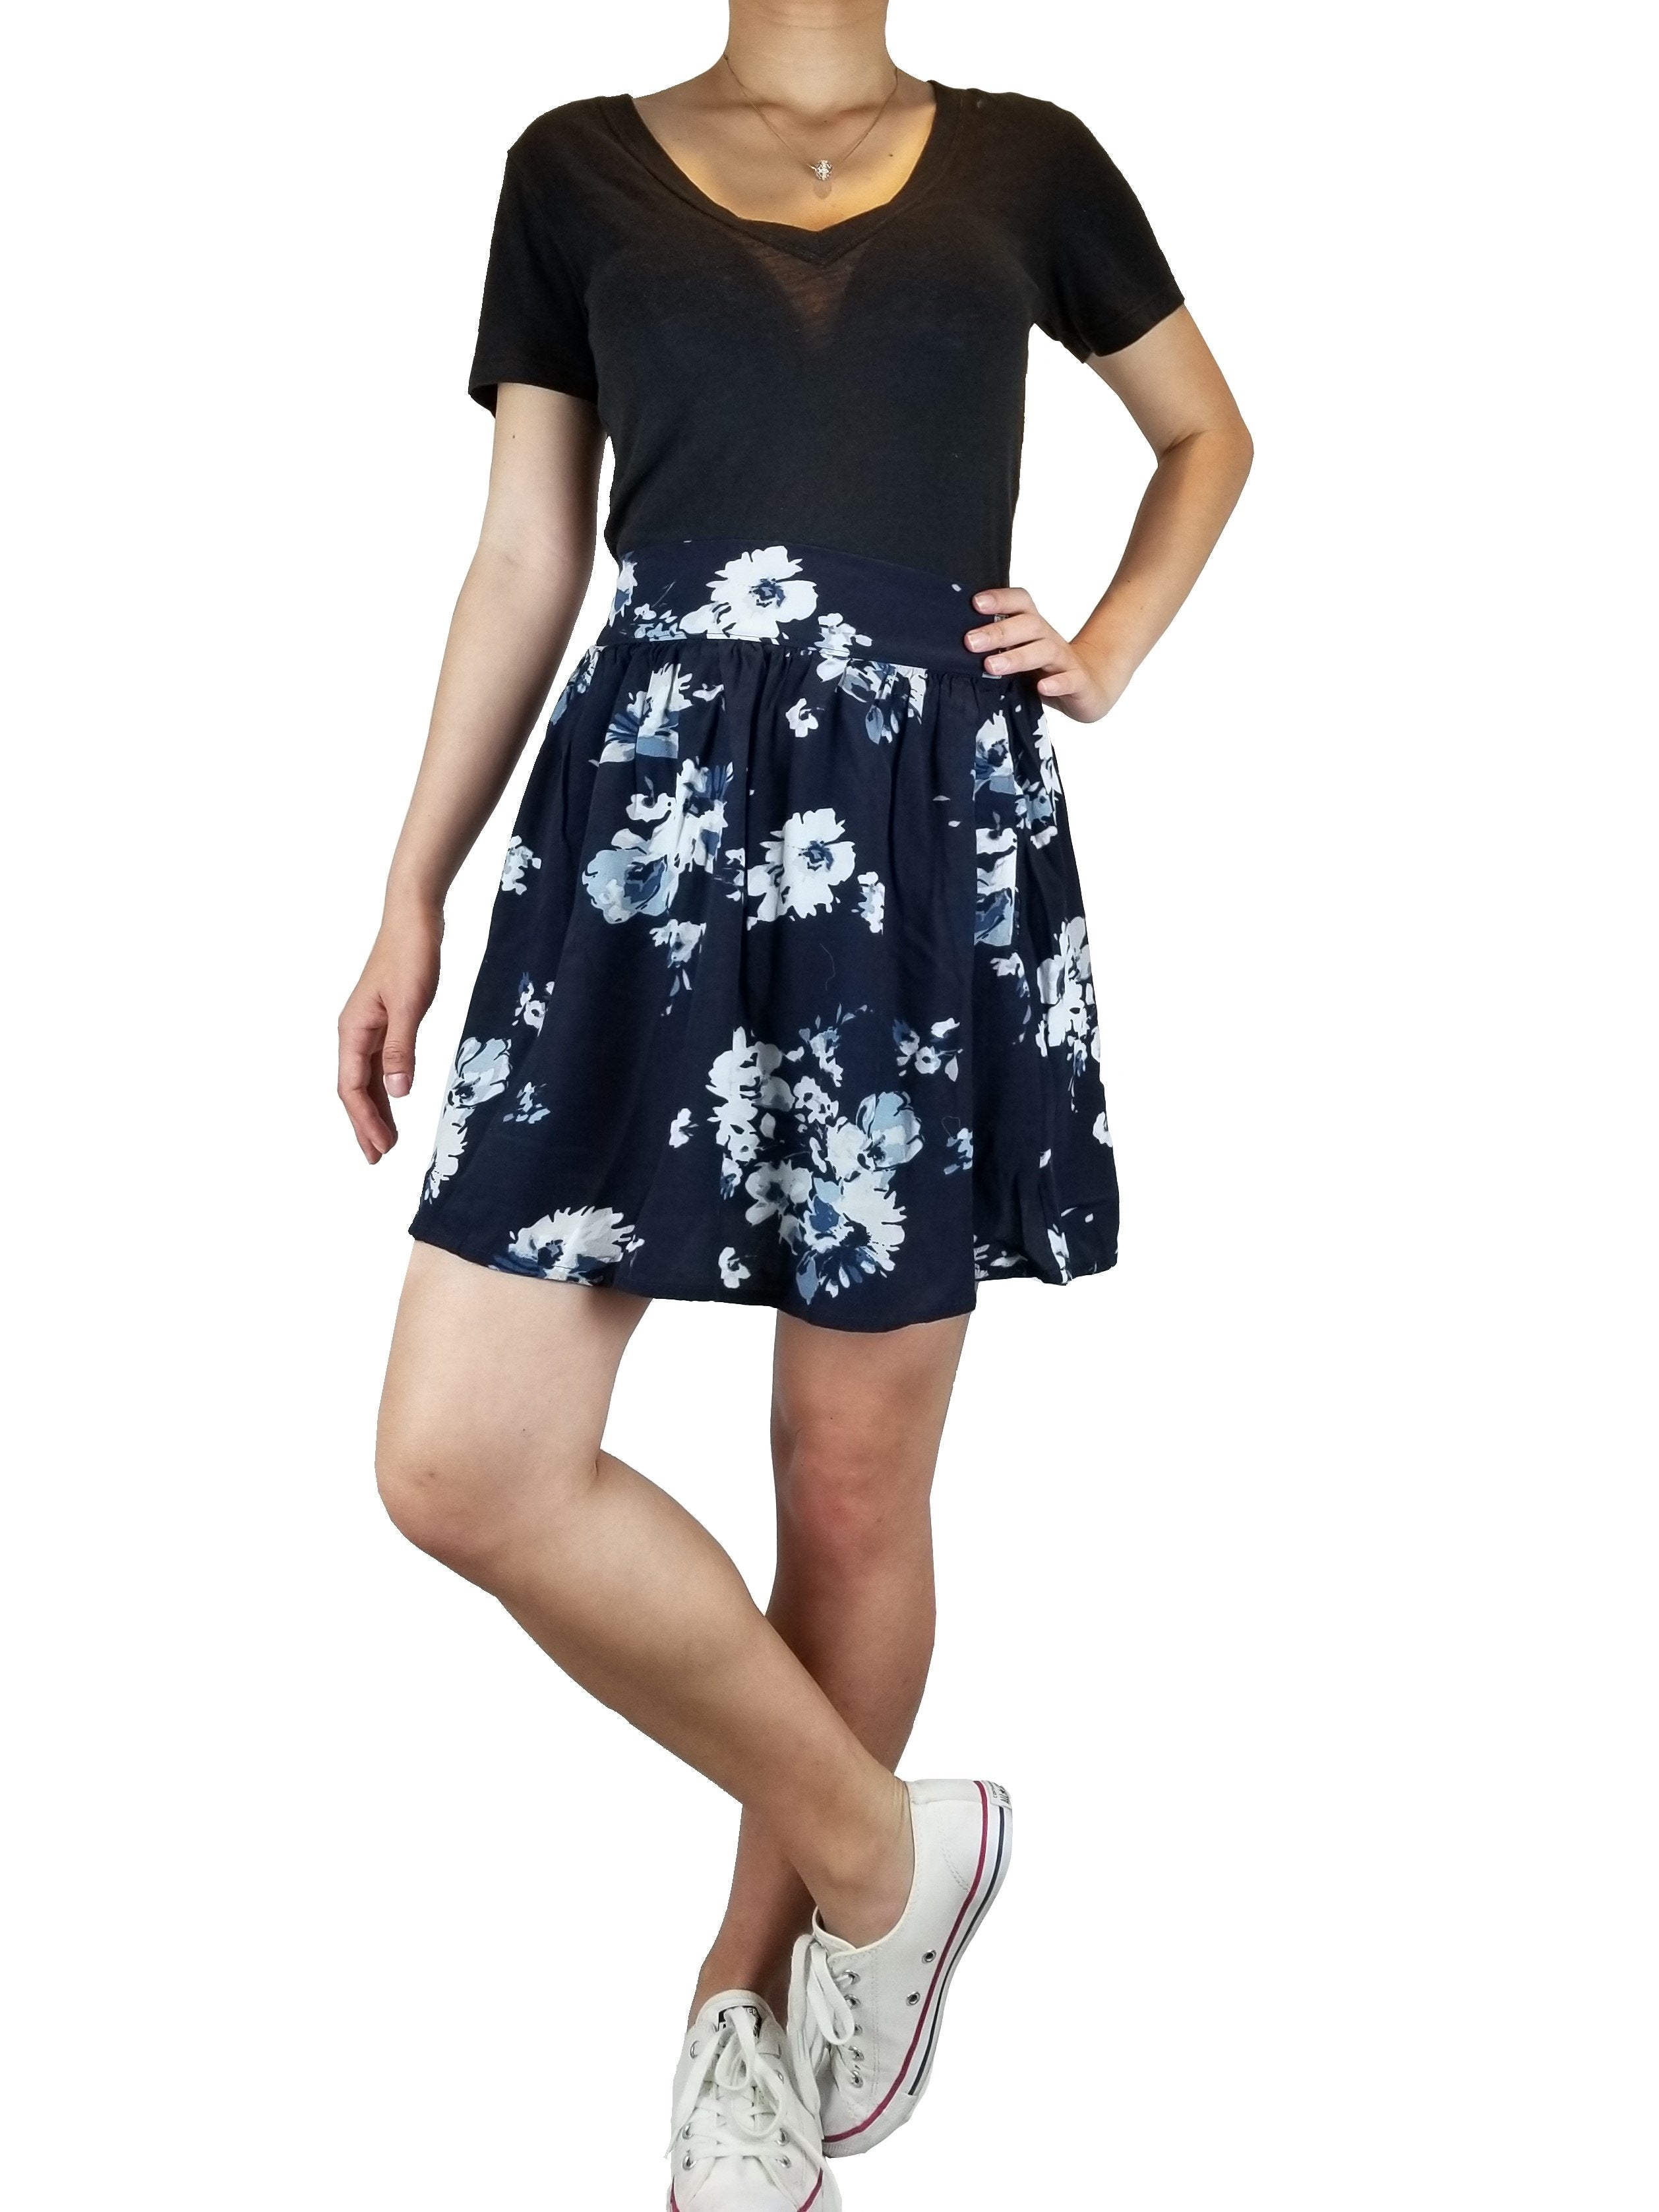 Garage Flower skirt, Summer skirt, Blue, 58% Viscose, 42% Rayon, women's Skirts & Shorts, women's Blue Skirts & Shorts, Garage women's Skirts & Shorts, mini floral skirt, blue and white floral mini skirt, skirt